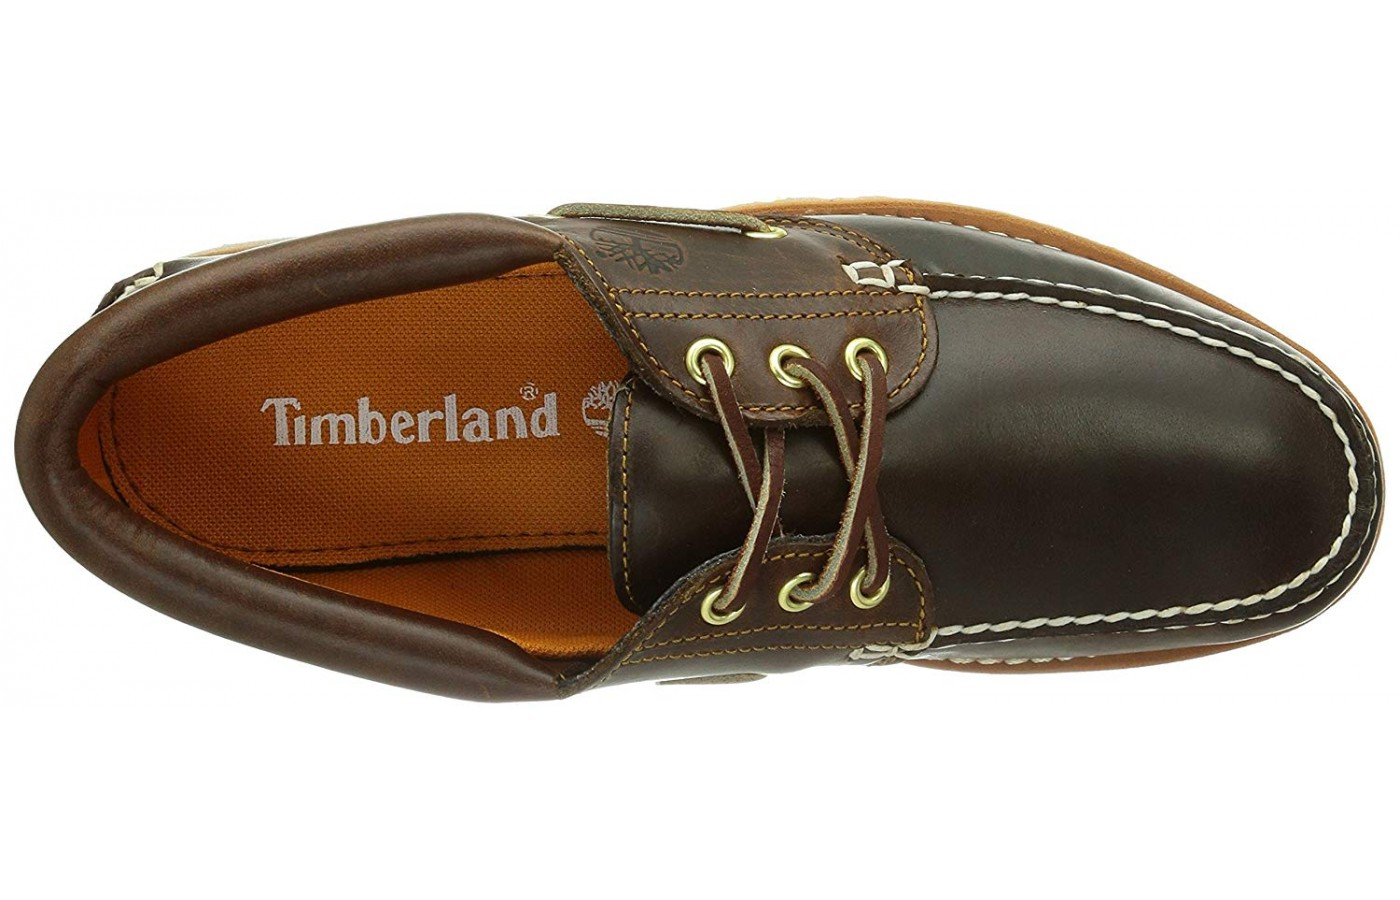 Timberland Earthkeepers 3 Eye top